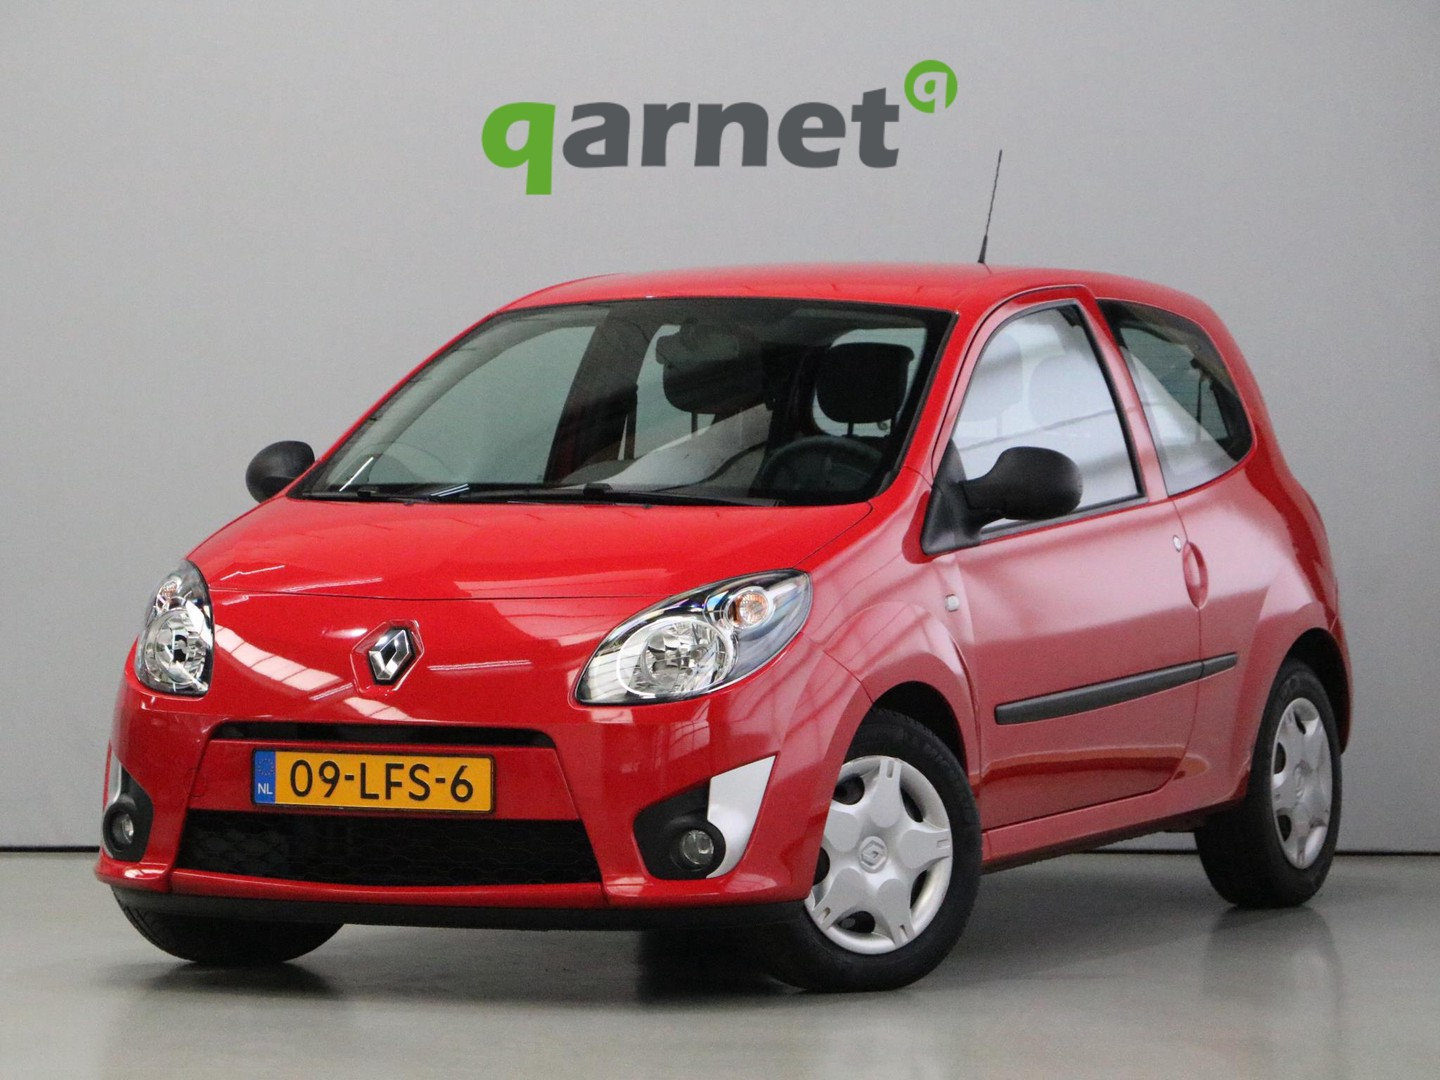 Renault Twingo 1.2-16v 75pk exception